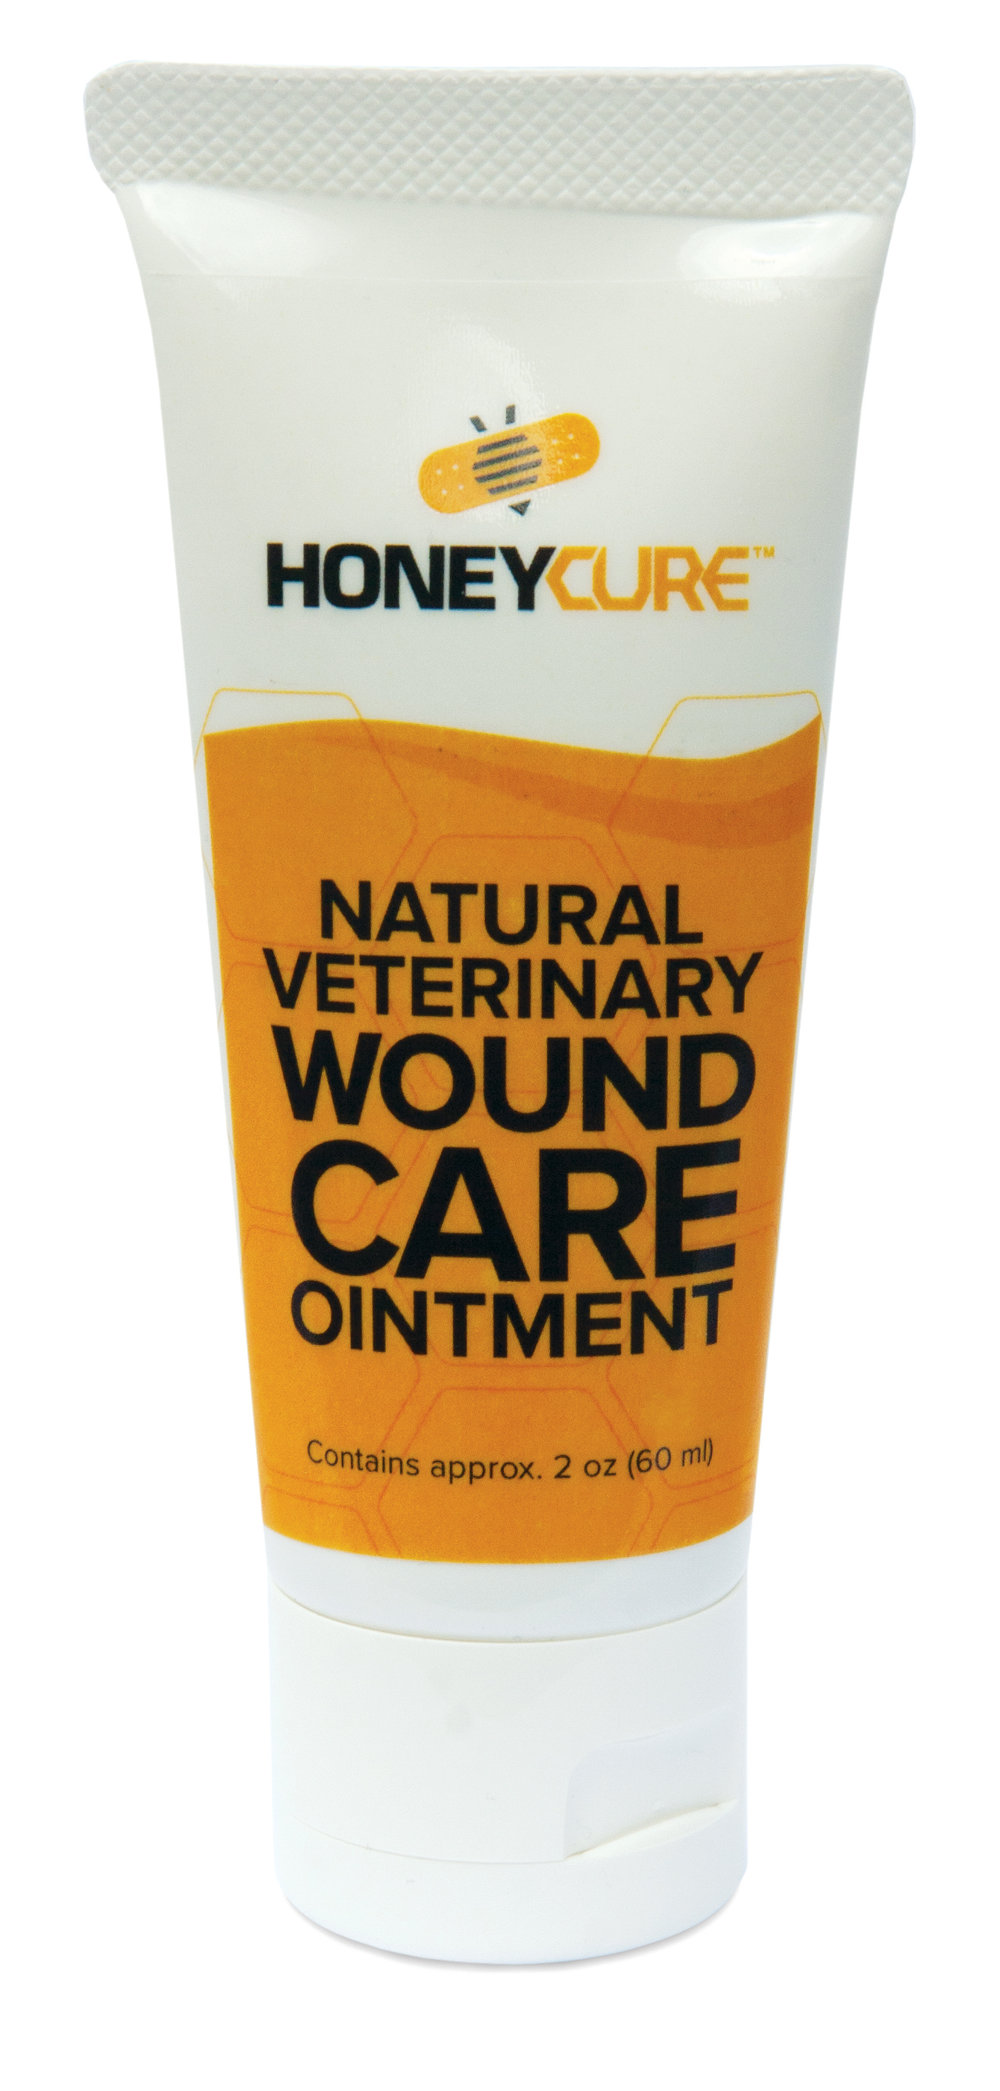 HoneyCure Natural Veterinary Wound Care Pet Ointment, 1-oz tube